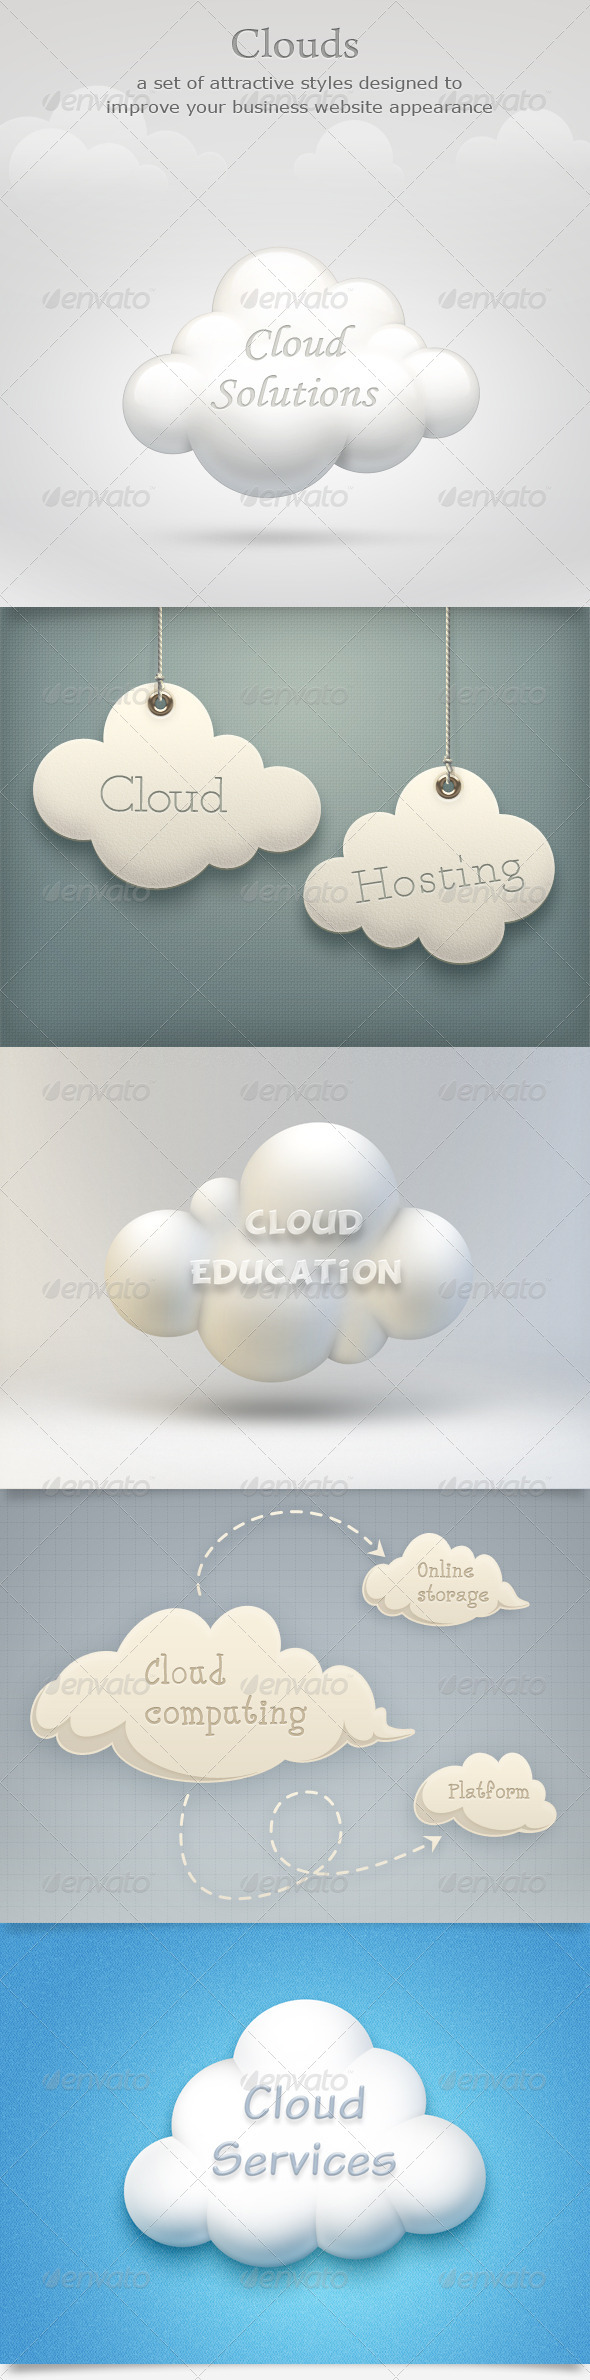 Clouds Set - Business Illustrations